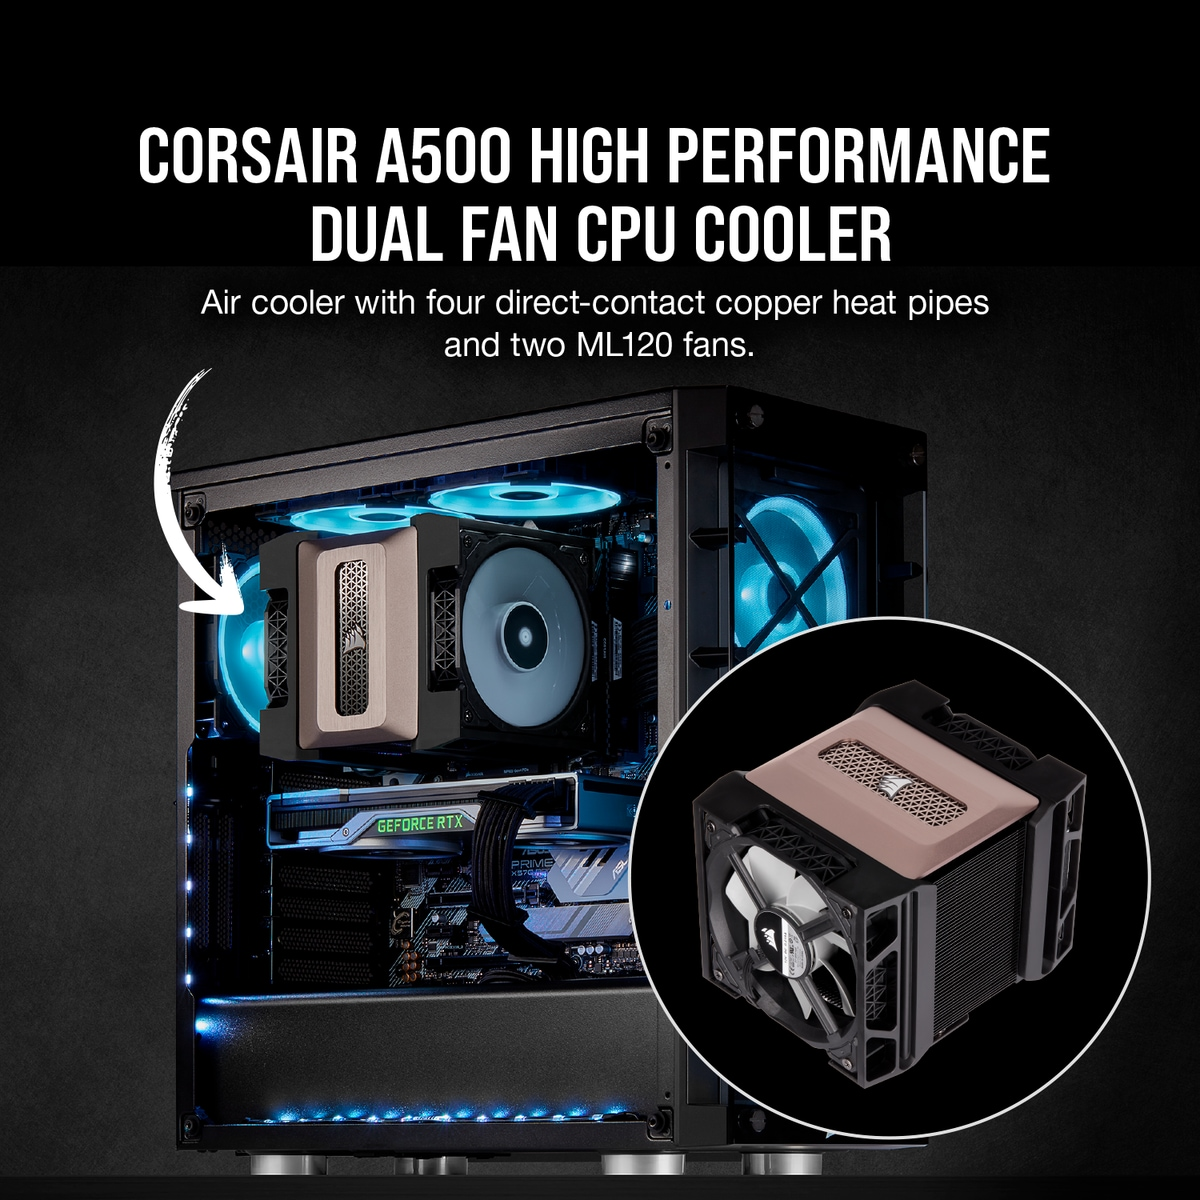 Promotional image of the Corsair A500 CPU cooler that shows a complete PC build featuring it, with a piece of text and an arrow labelling it.